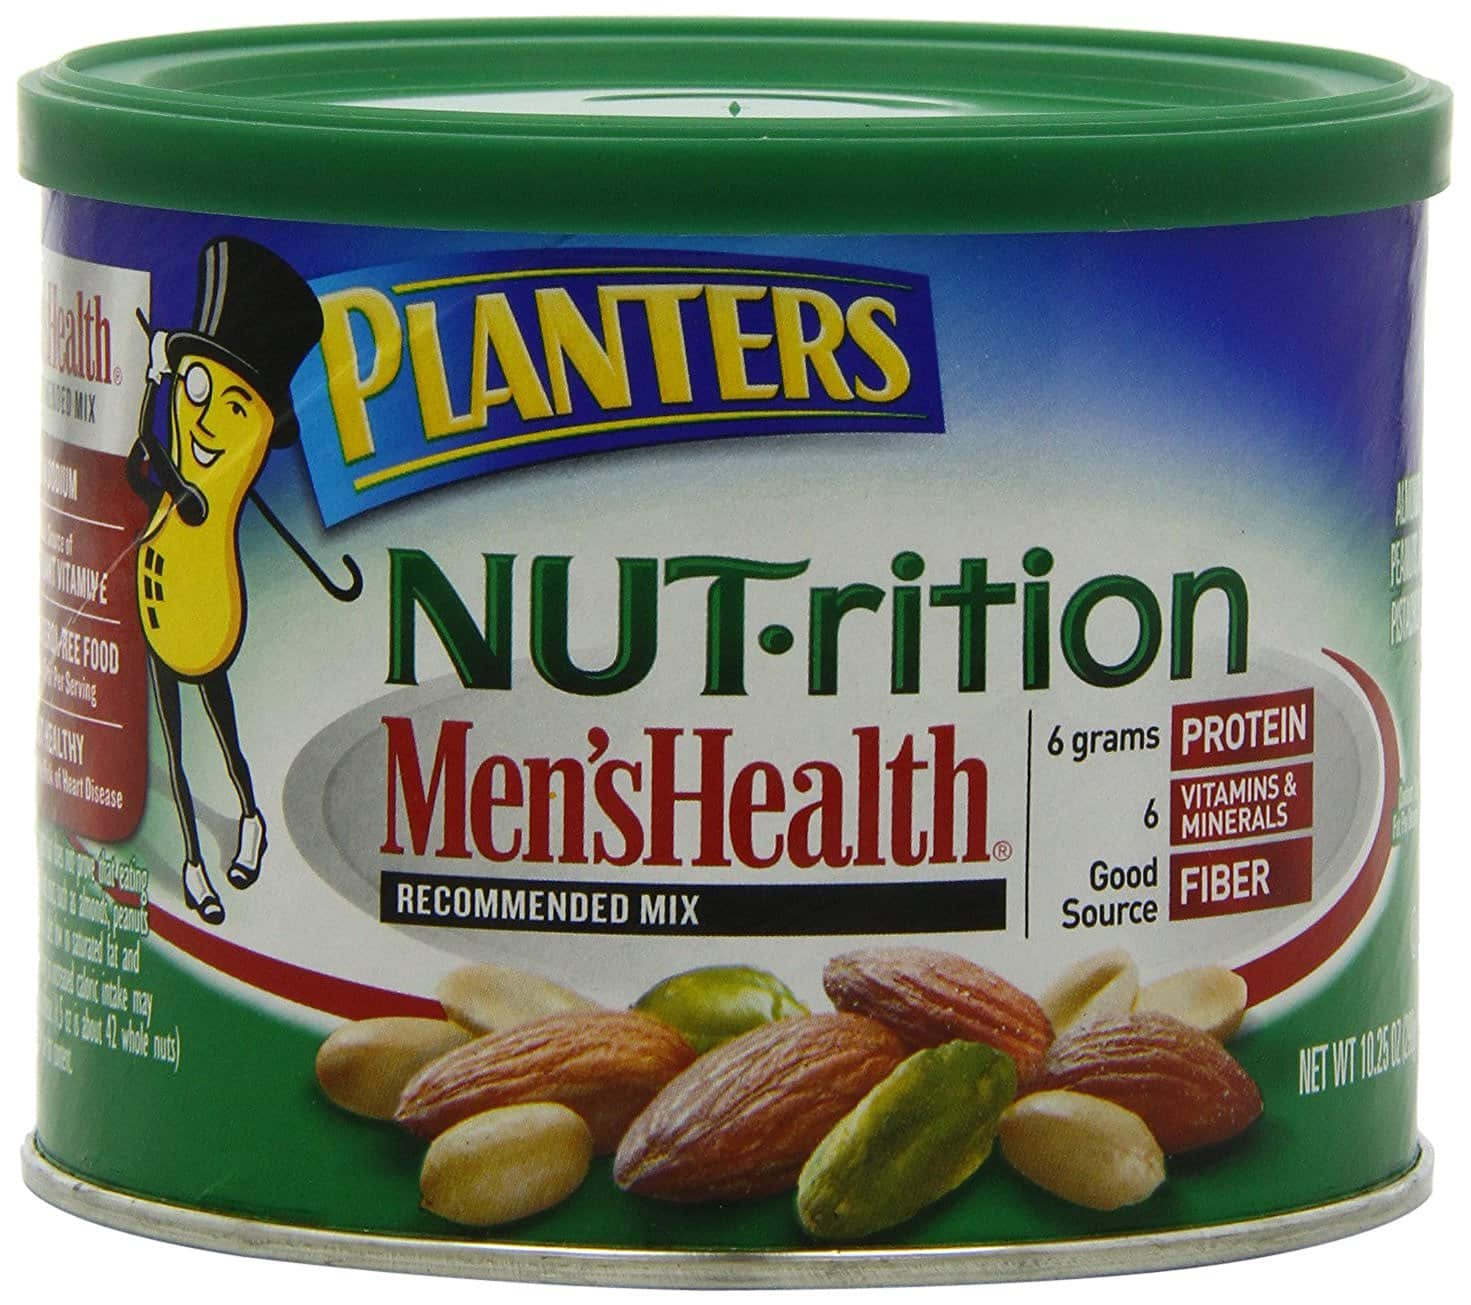 3-Pack of 10.25oz Planters Nut-rition Men's Health Recommended Mix (Almonds, Peanuts, Pistachios) $4.16 + Free Shipping